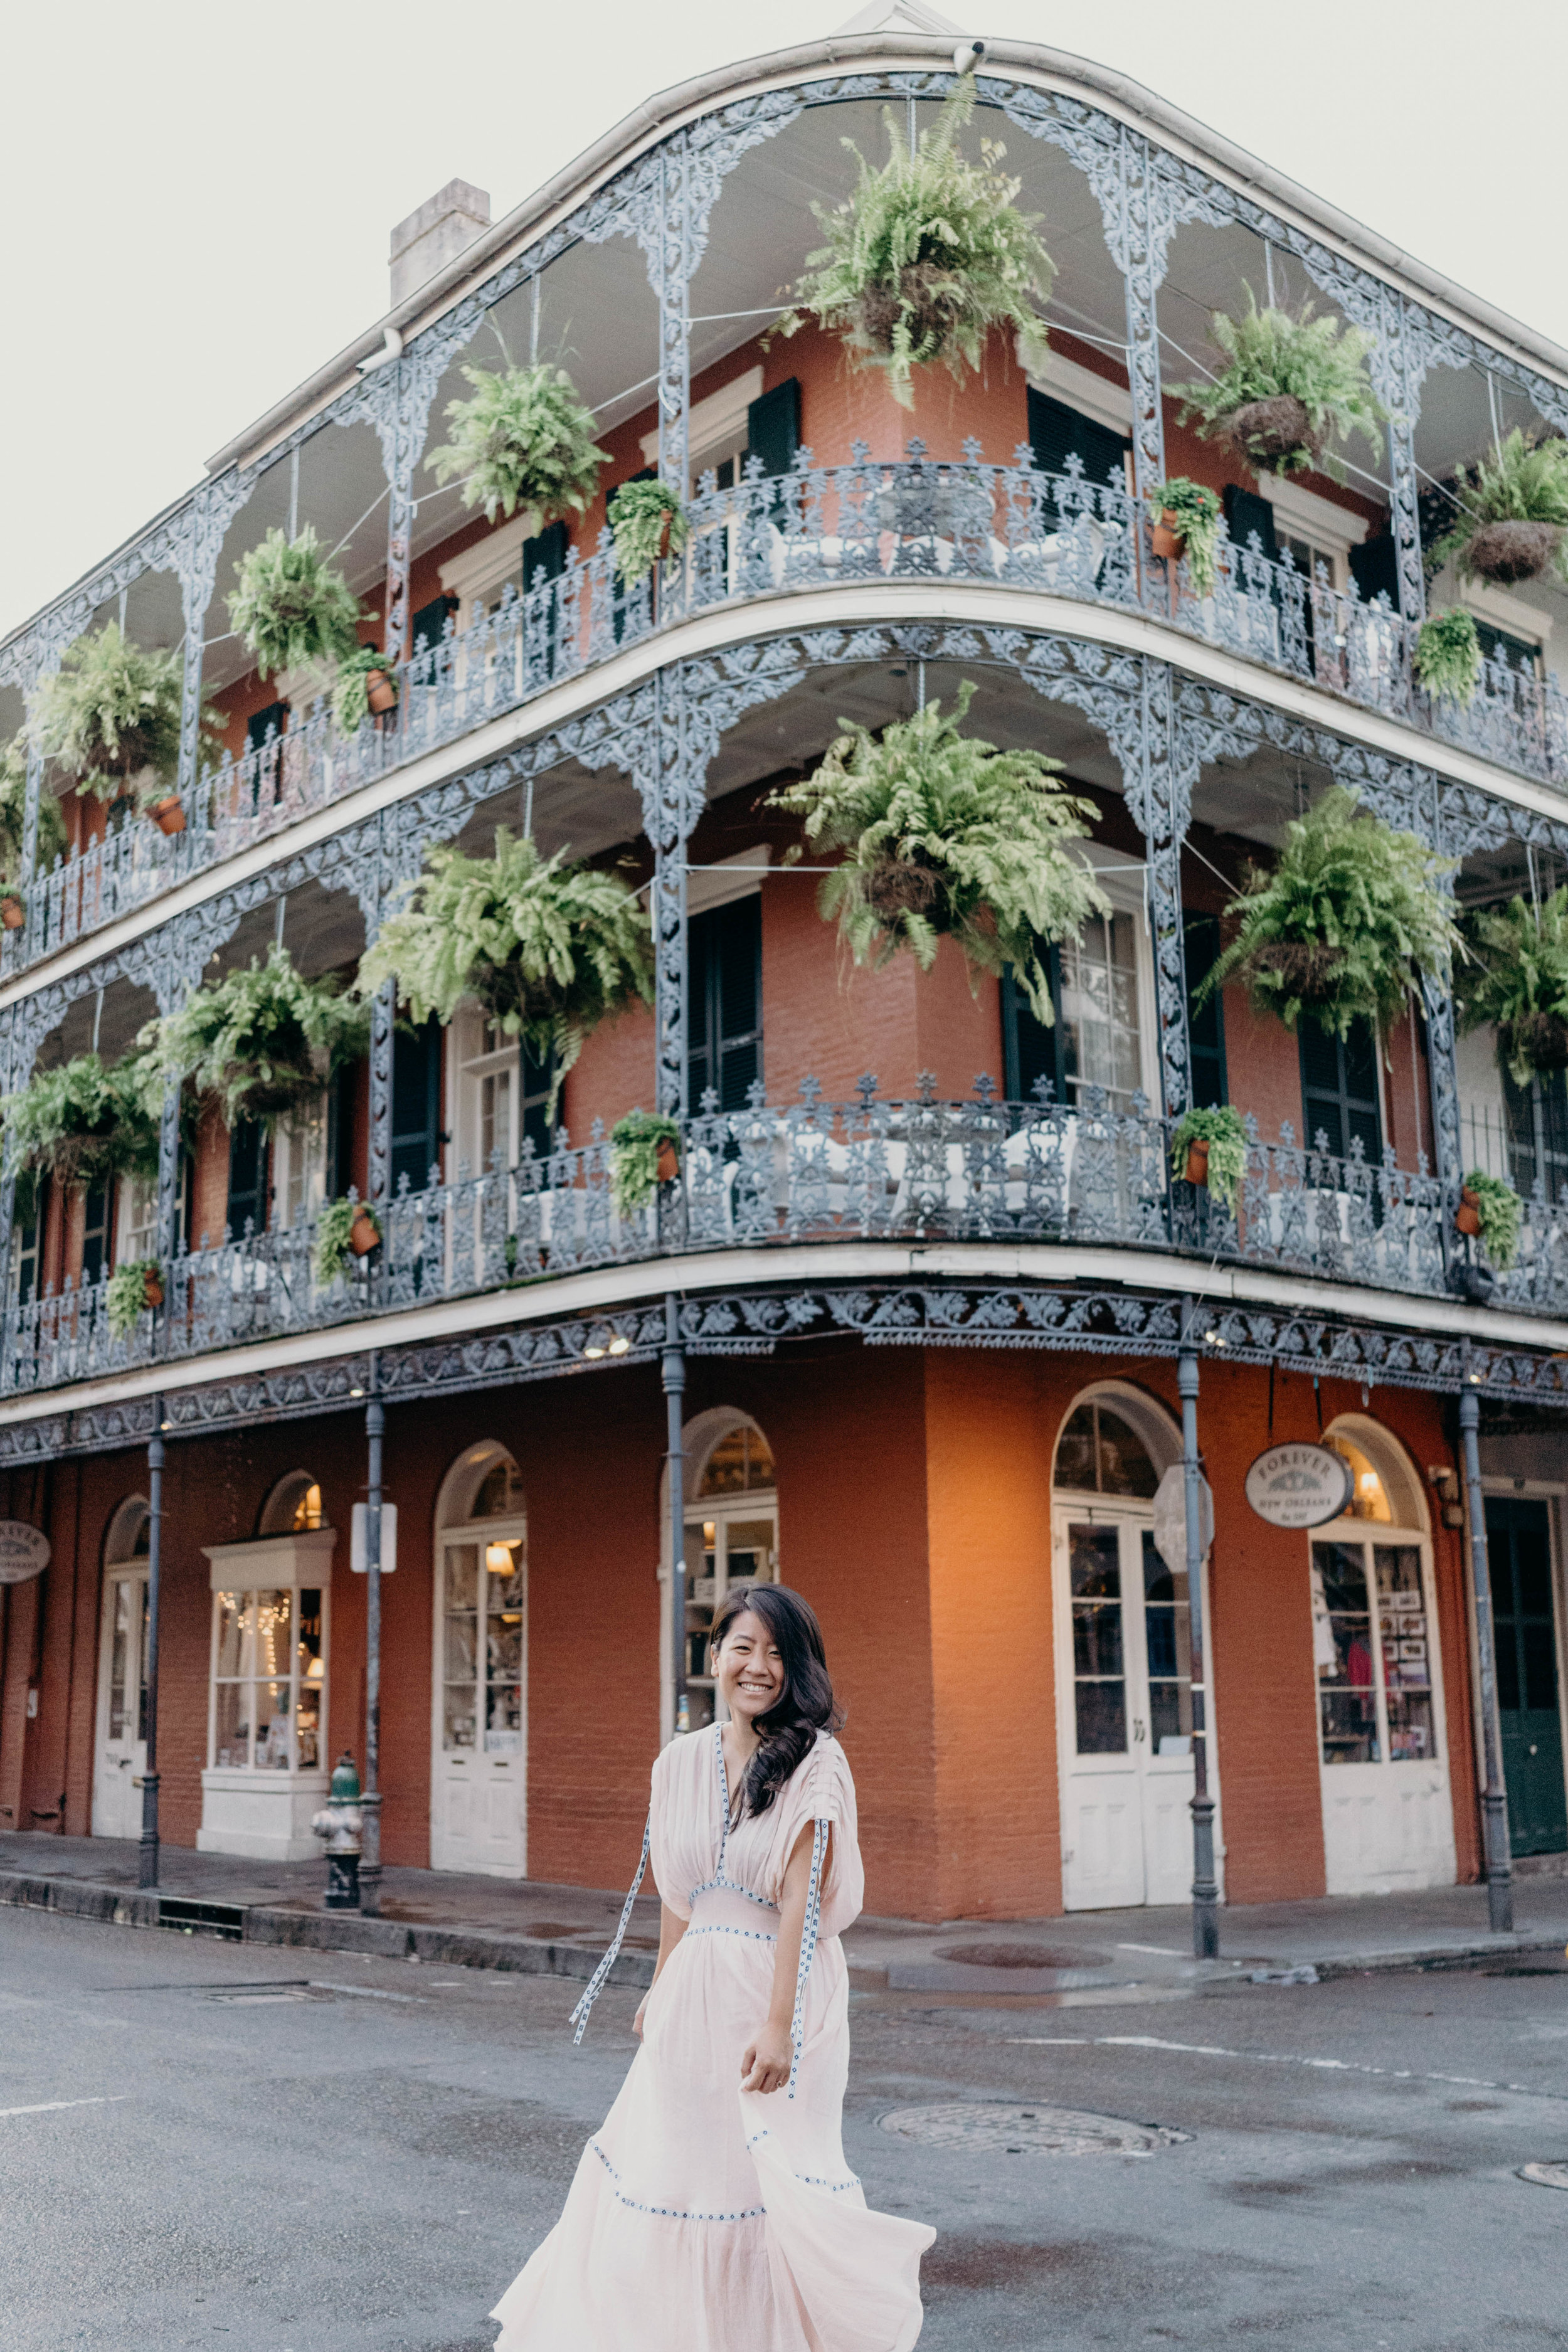 Saying Goodbye to Summer | On the Street Where We Live ( aretherelilactrees.com )  NOLA, New Orleans, Louisiana, LaBranche House, French Quarter